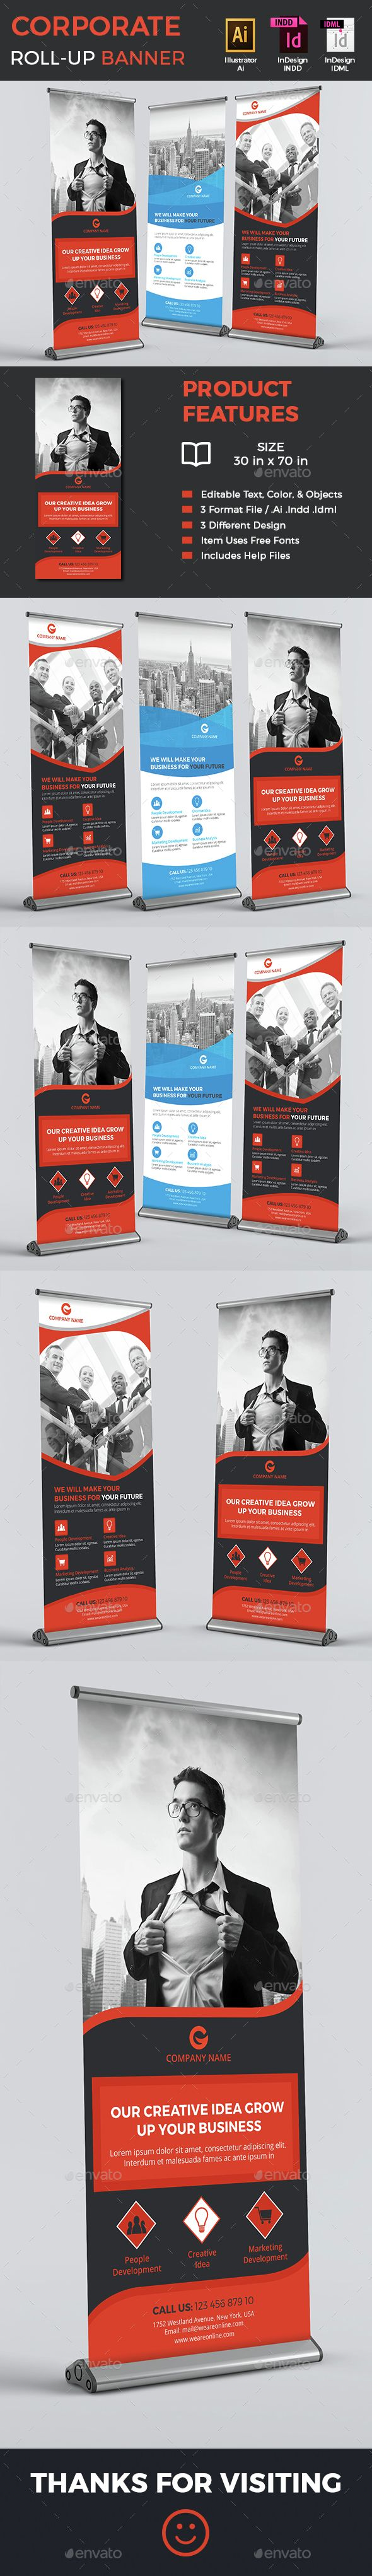 67 best roll up banner images on pinterest